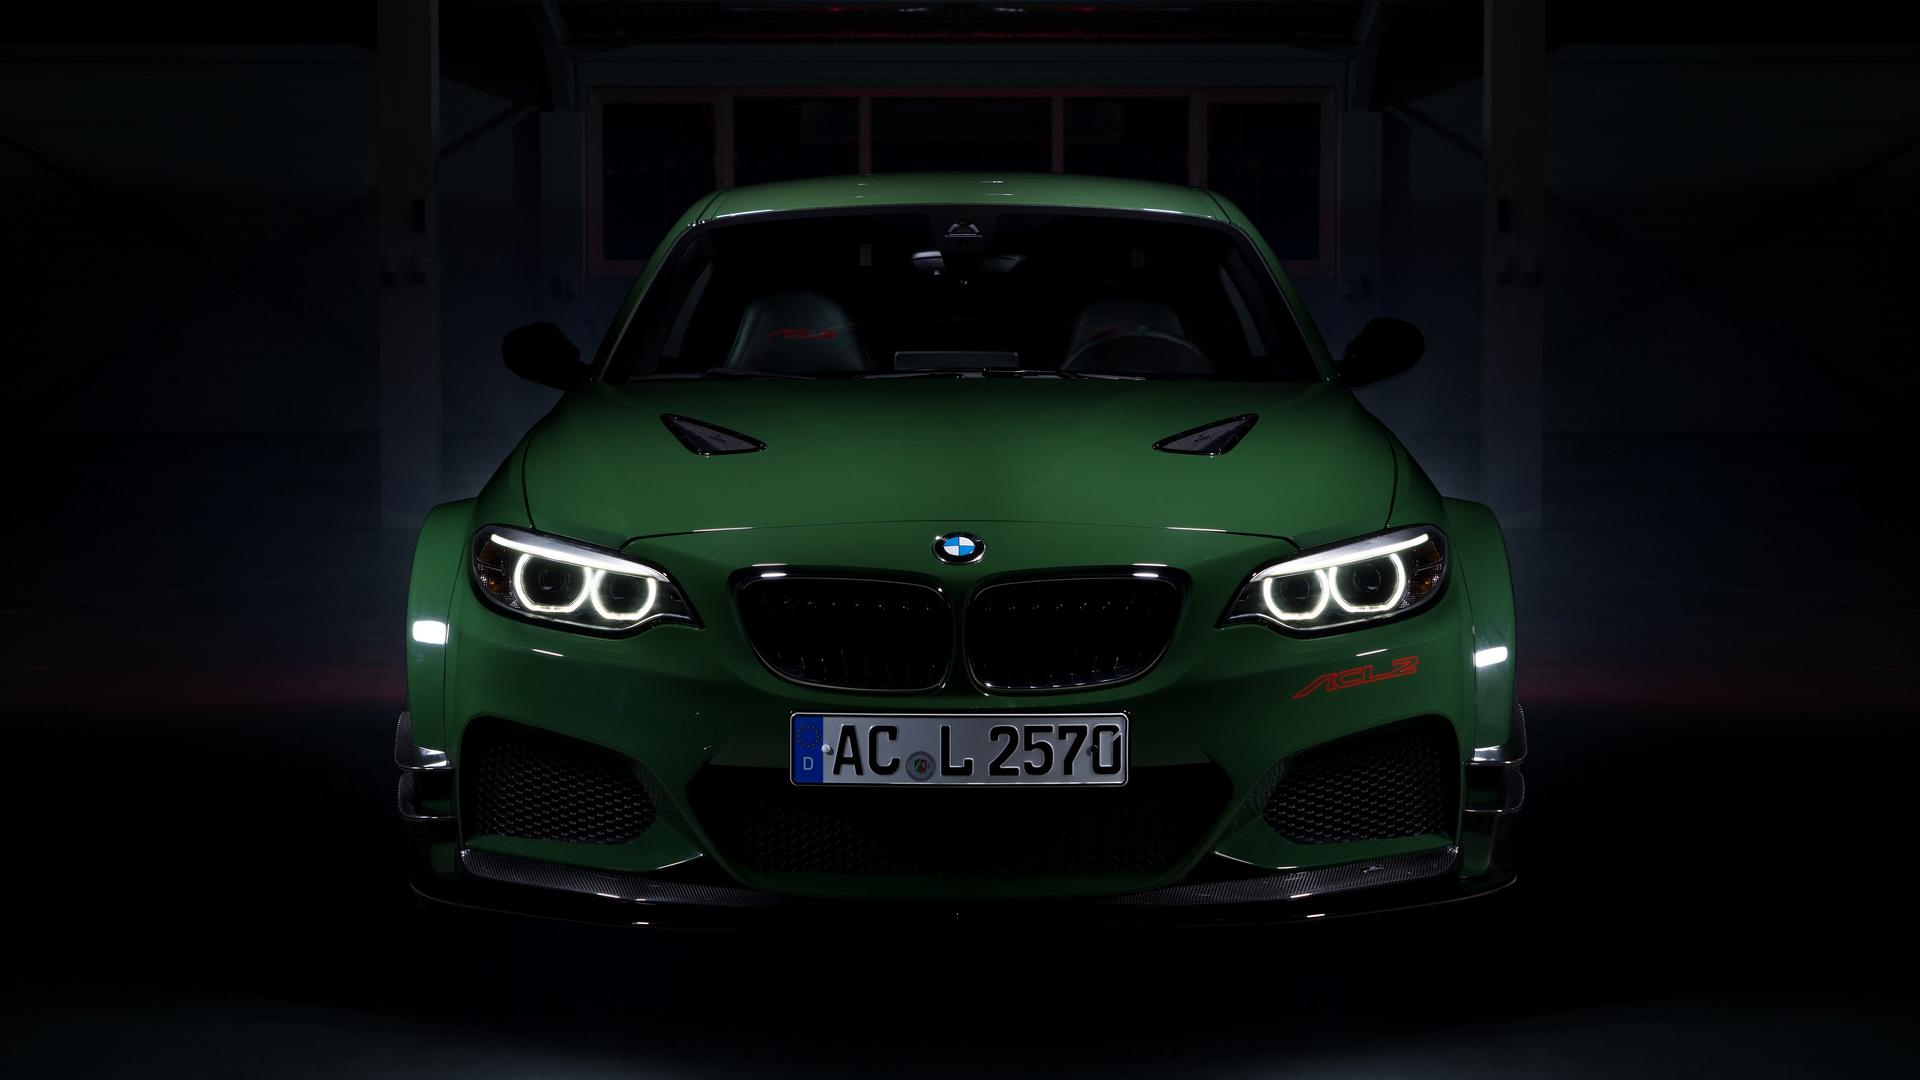 570HP M235i Becomes Fastest RoadLegal BMW At The Nurburgring